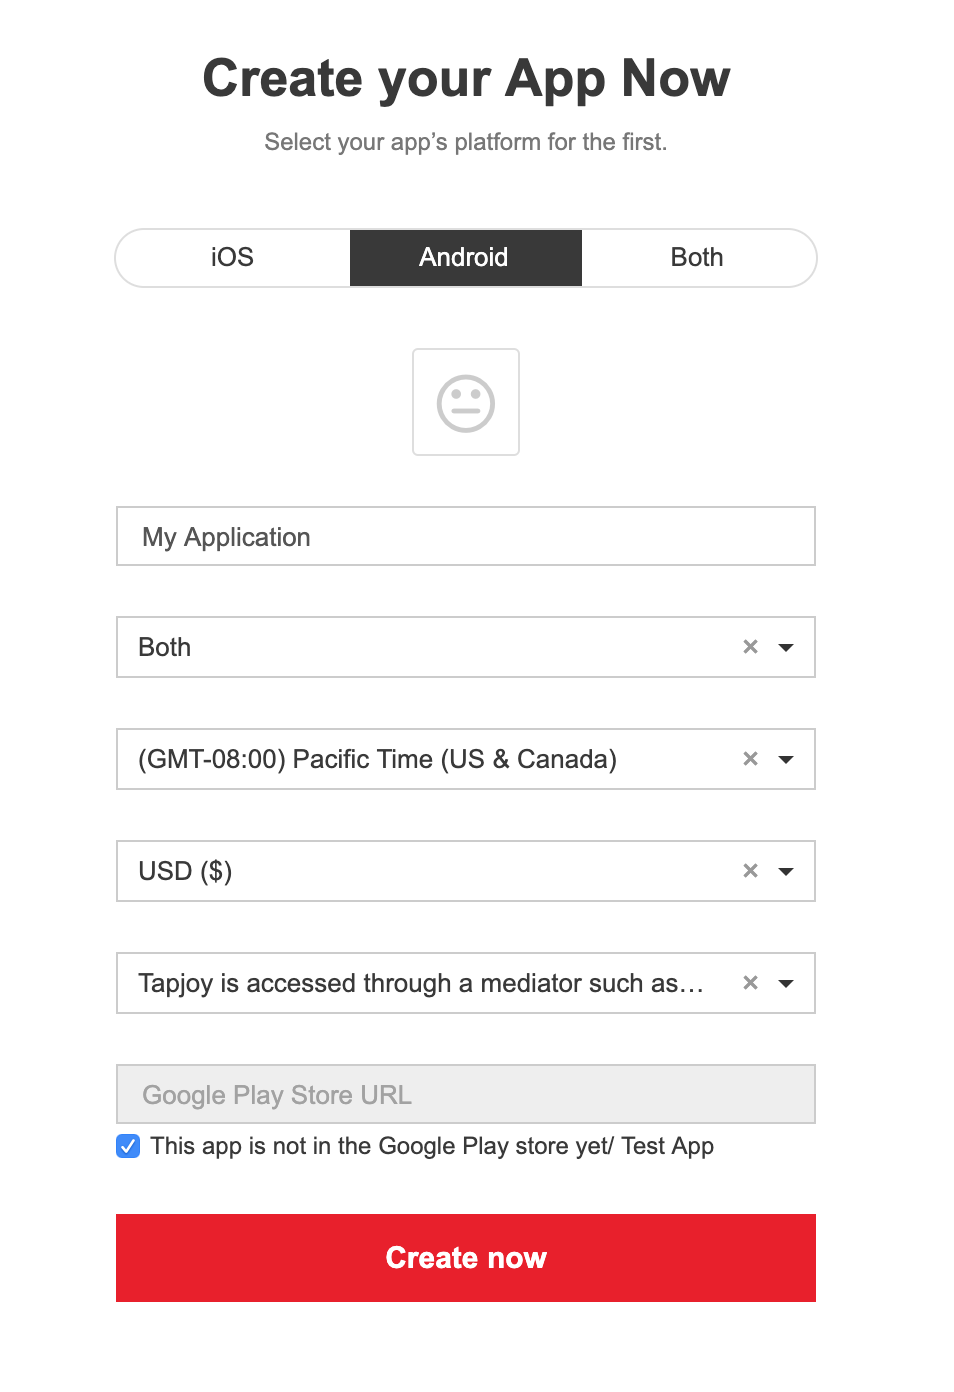 Integrating Tapjoy with Mediation | Android | Google Developers